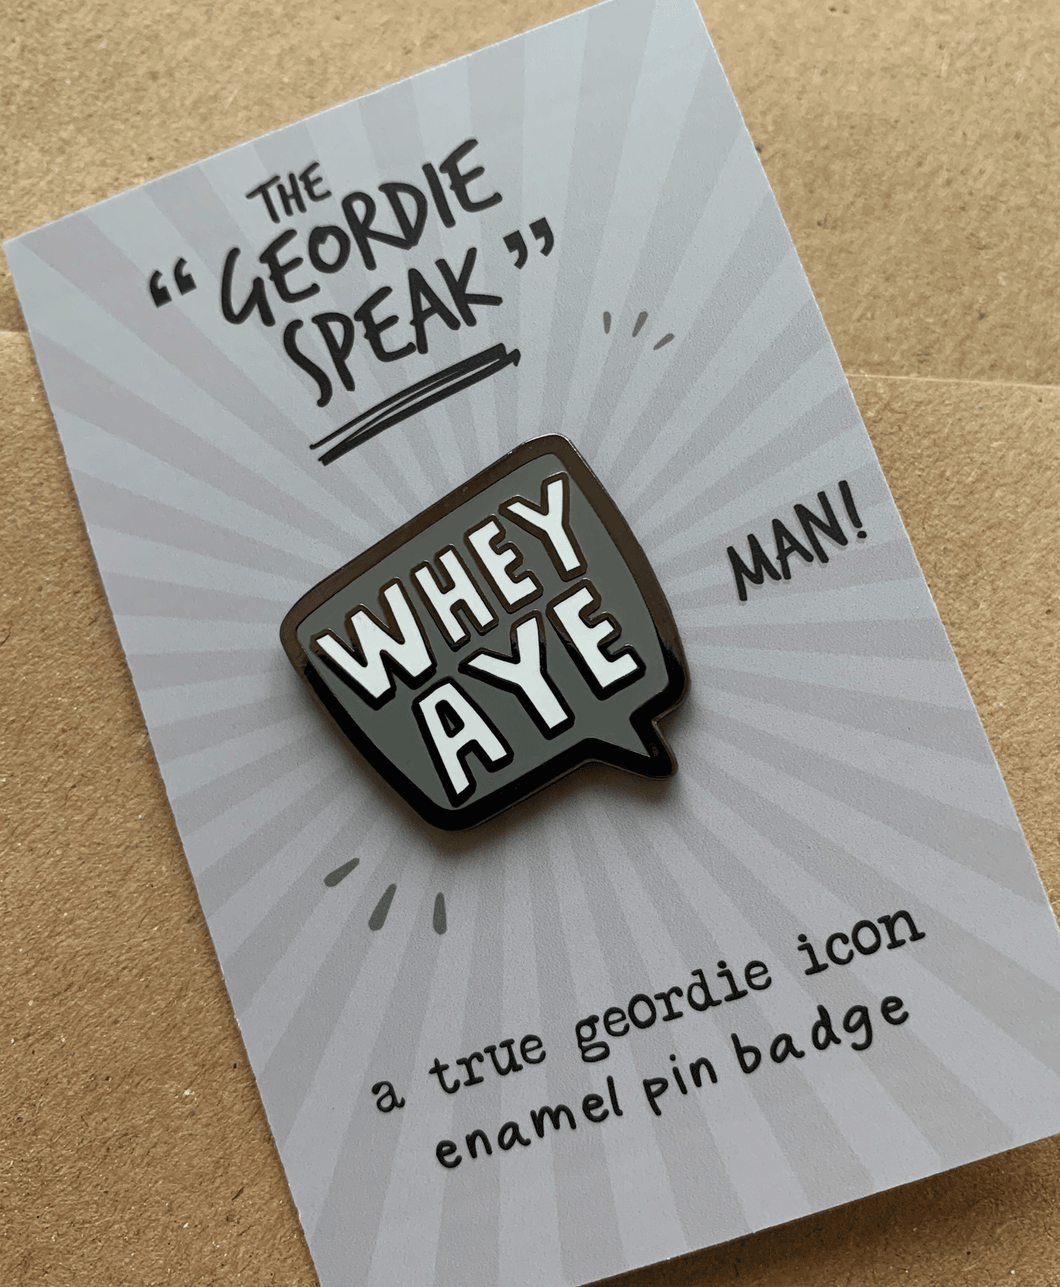 Whey Aye - Enamel Pin Badge